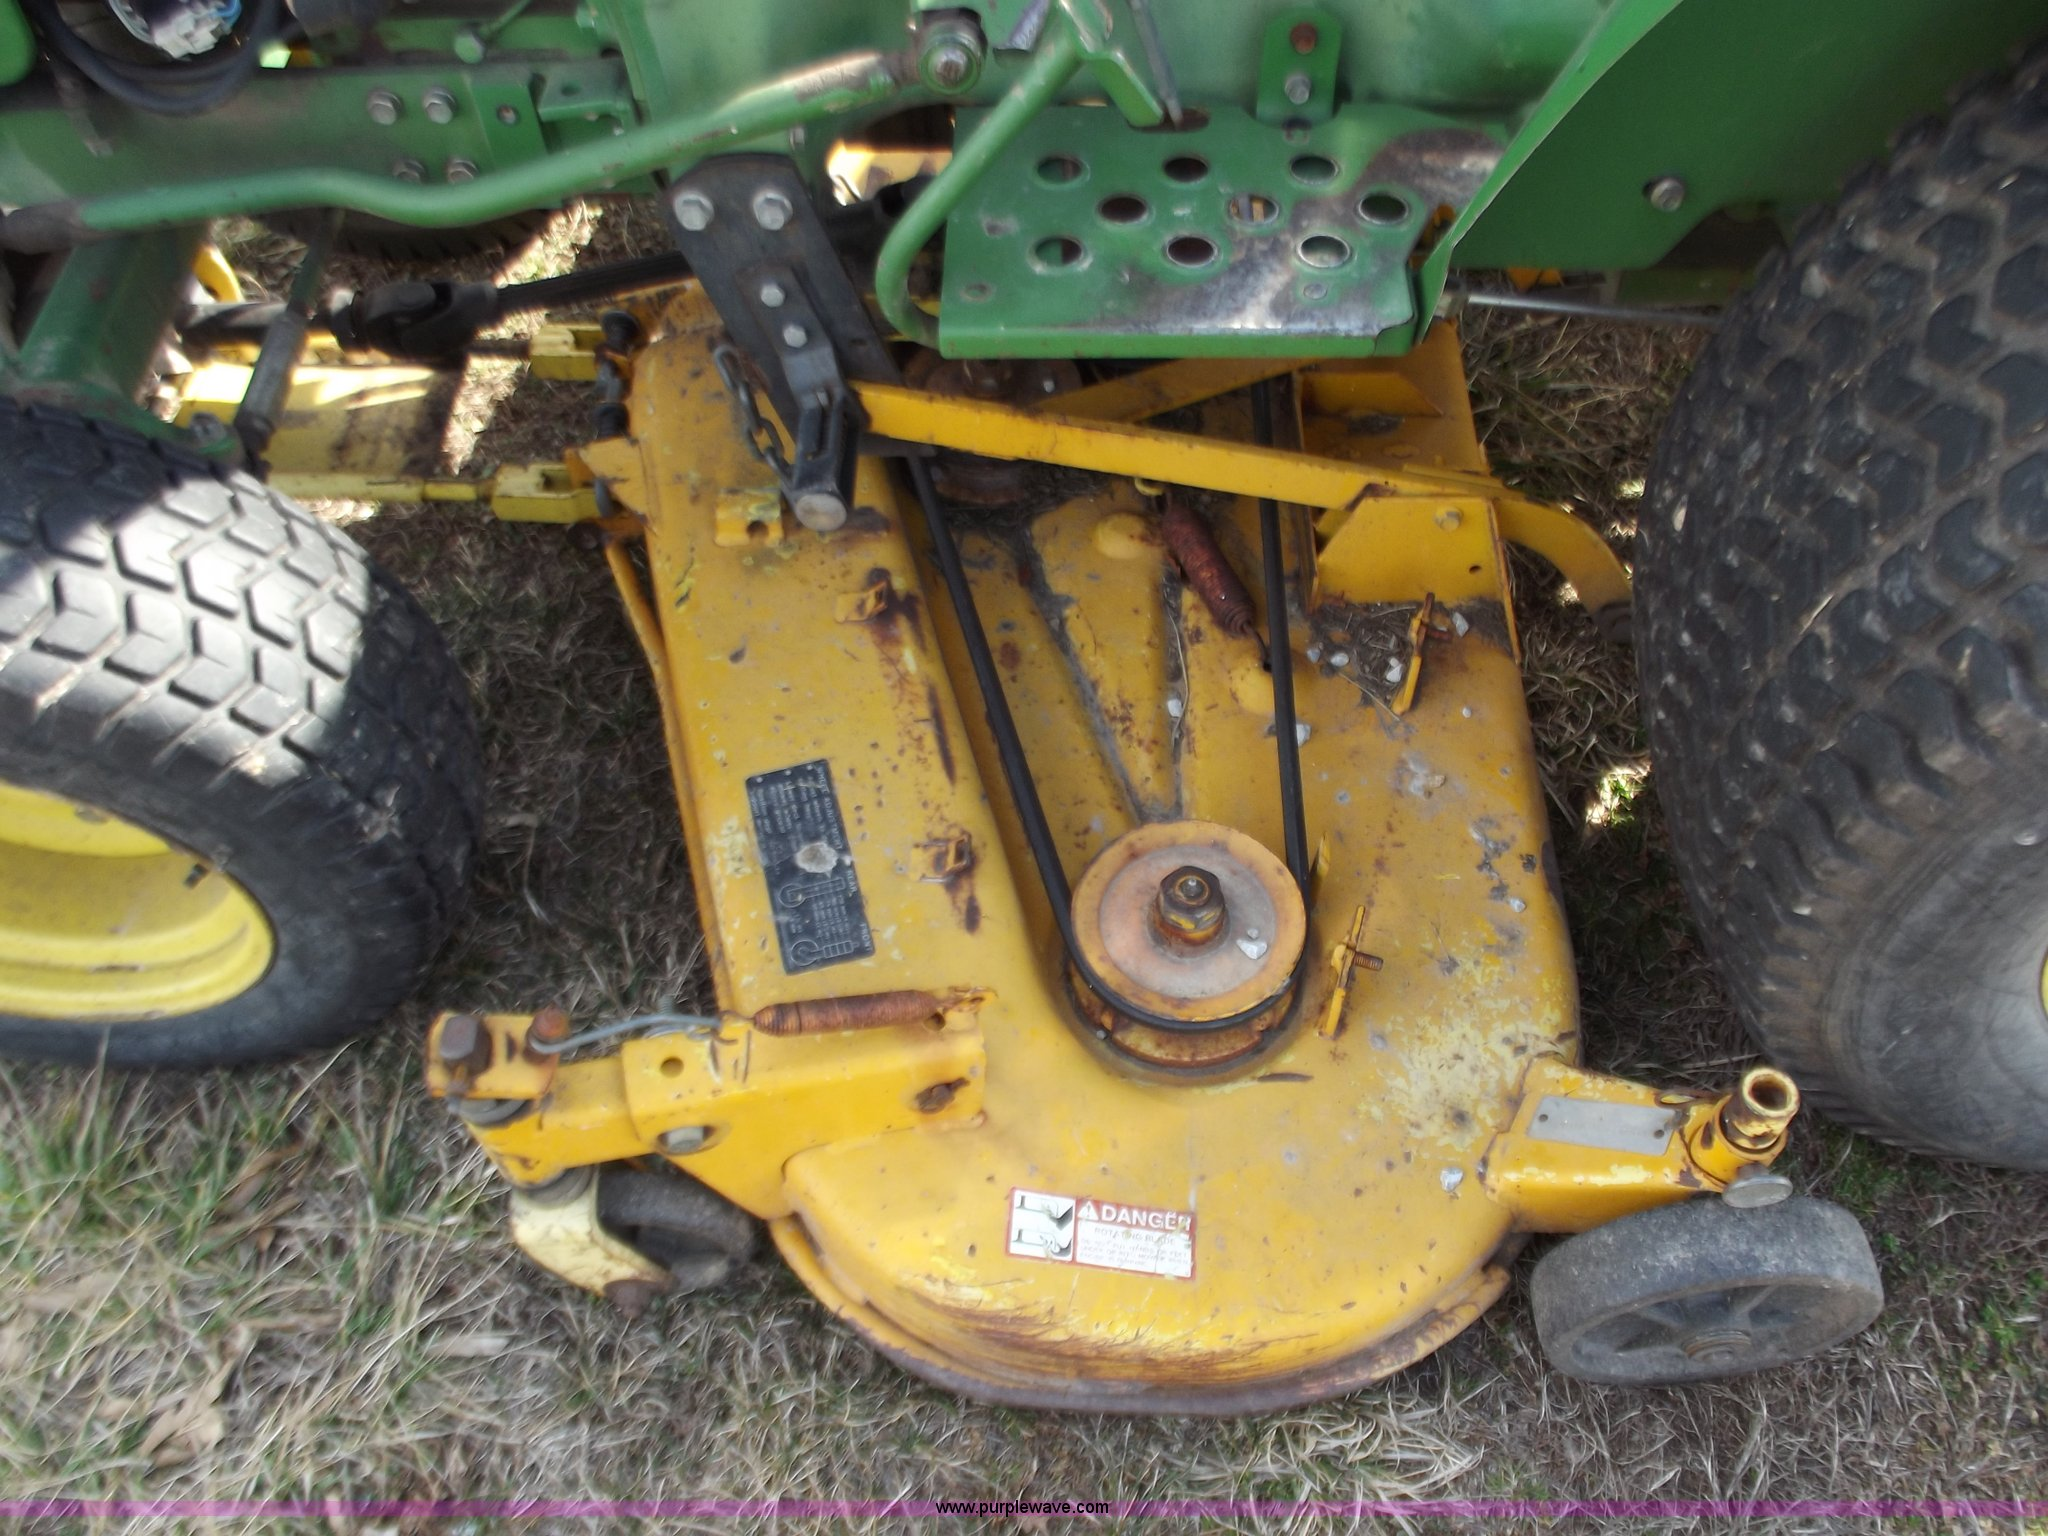 John Deere 650 lawn and garden tractor | Item E9629 | SOLD! ...